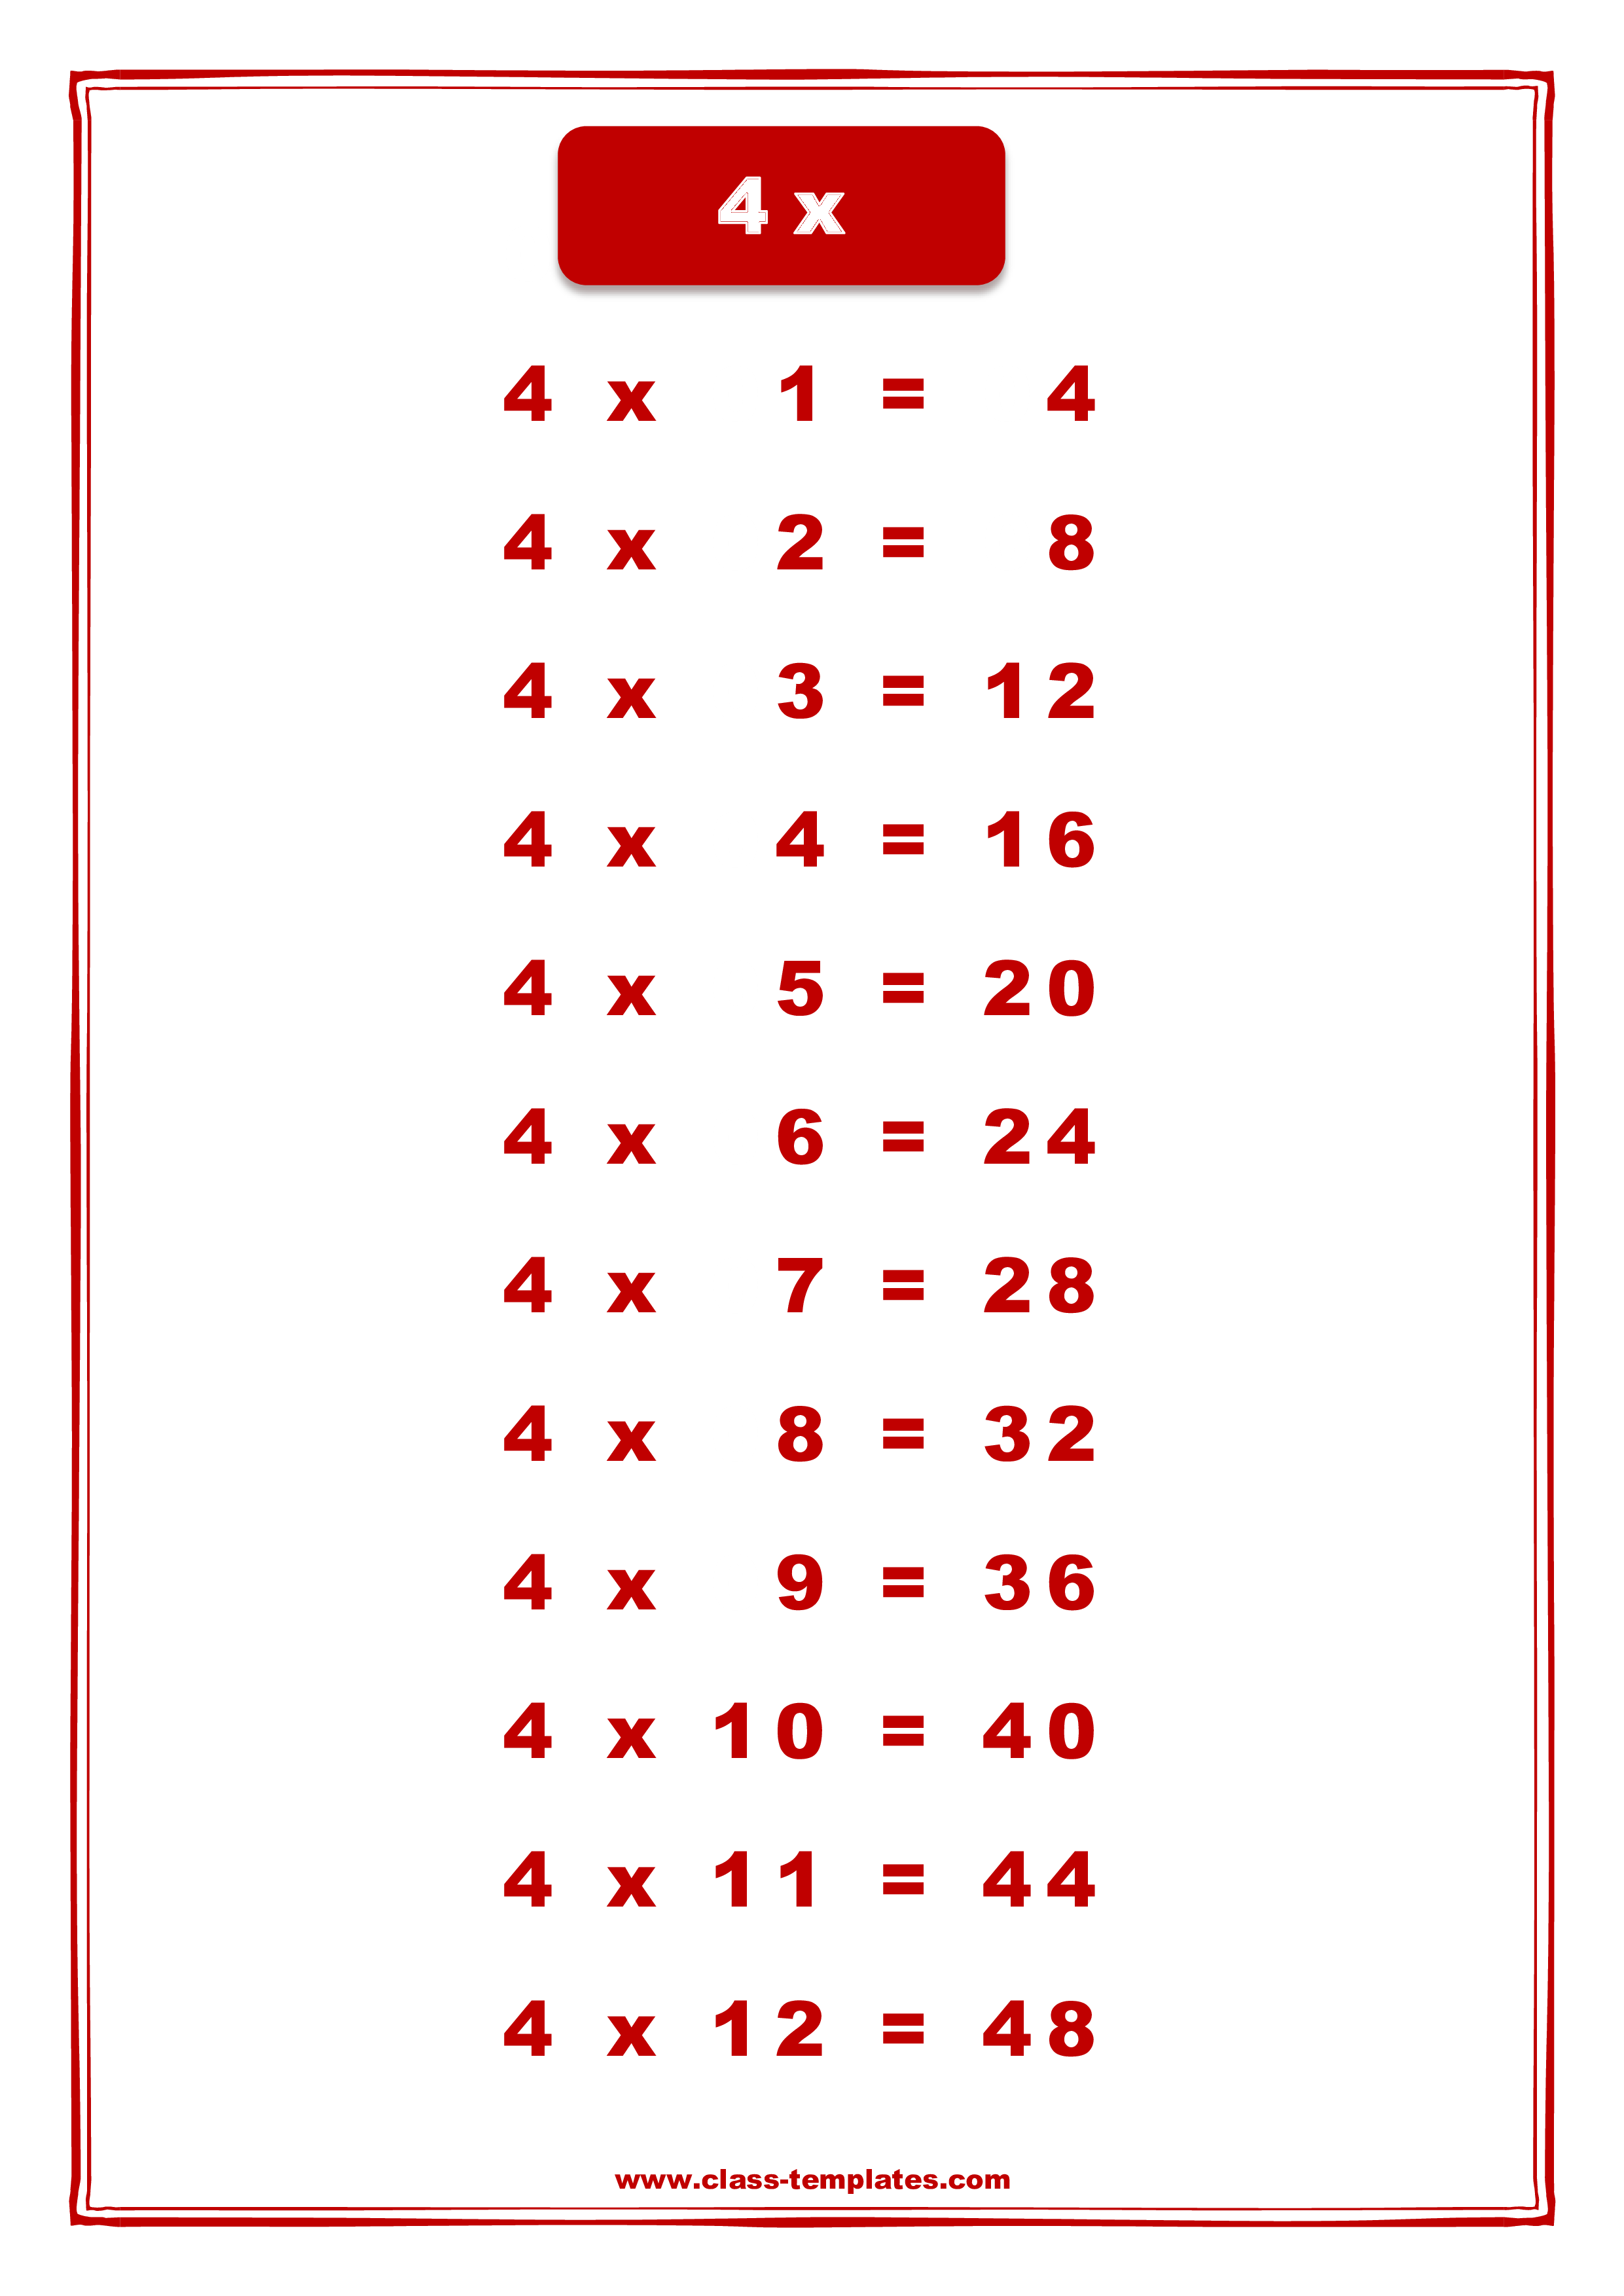 Multiplication Times Tables 4X main image